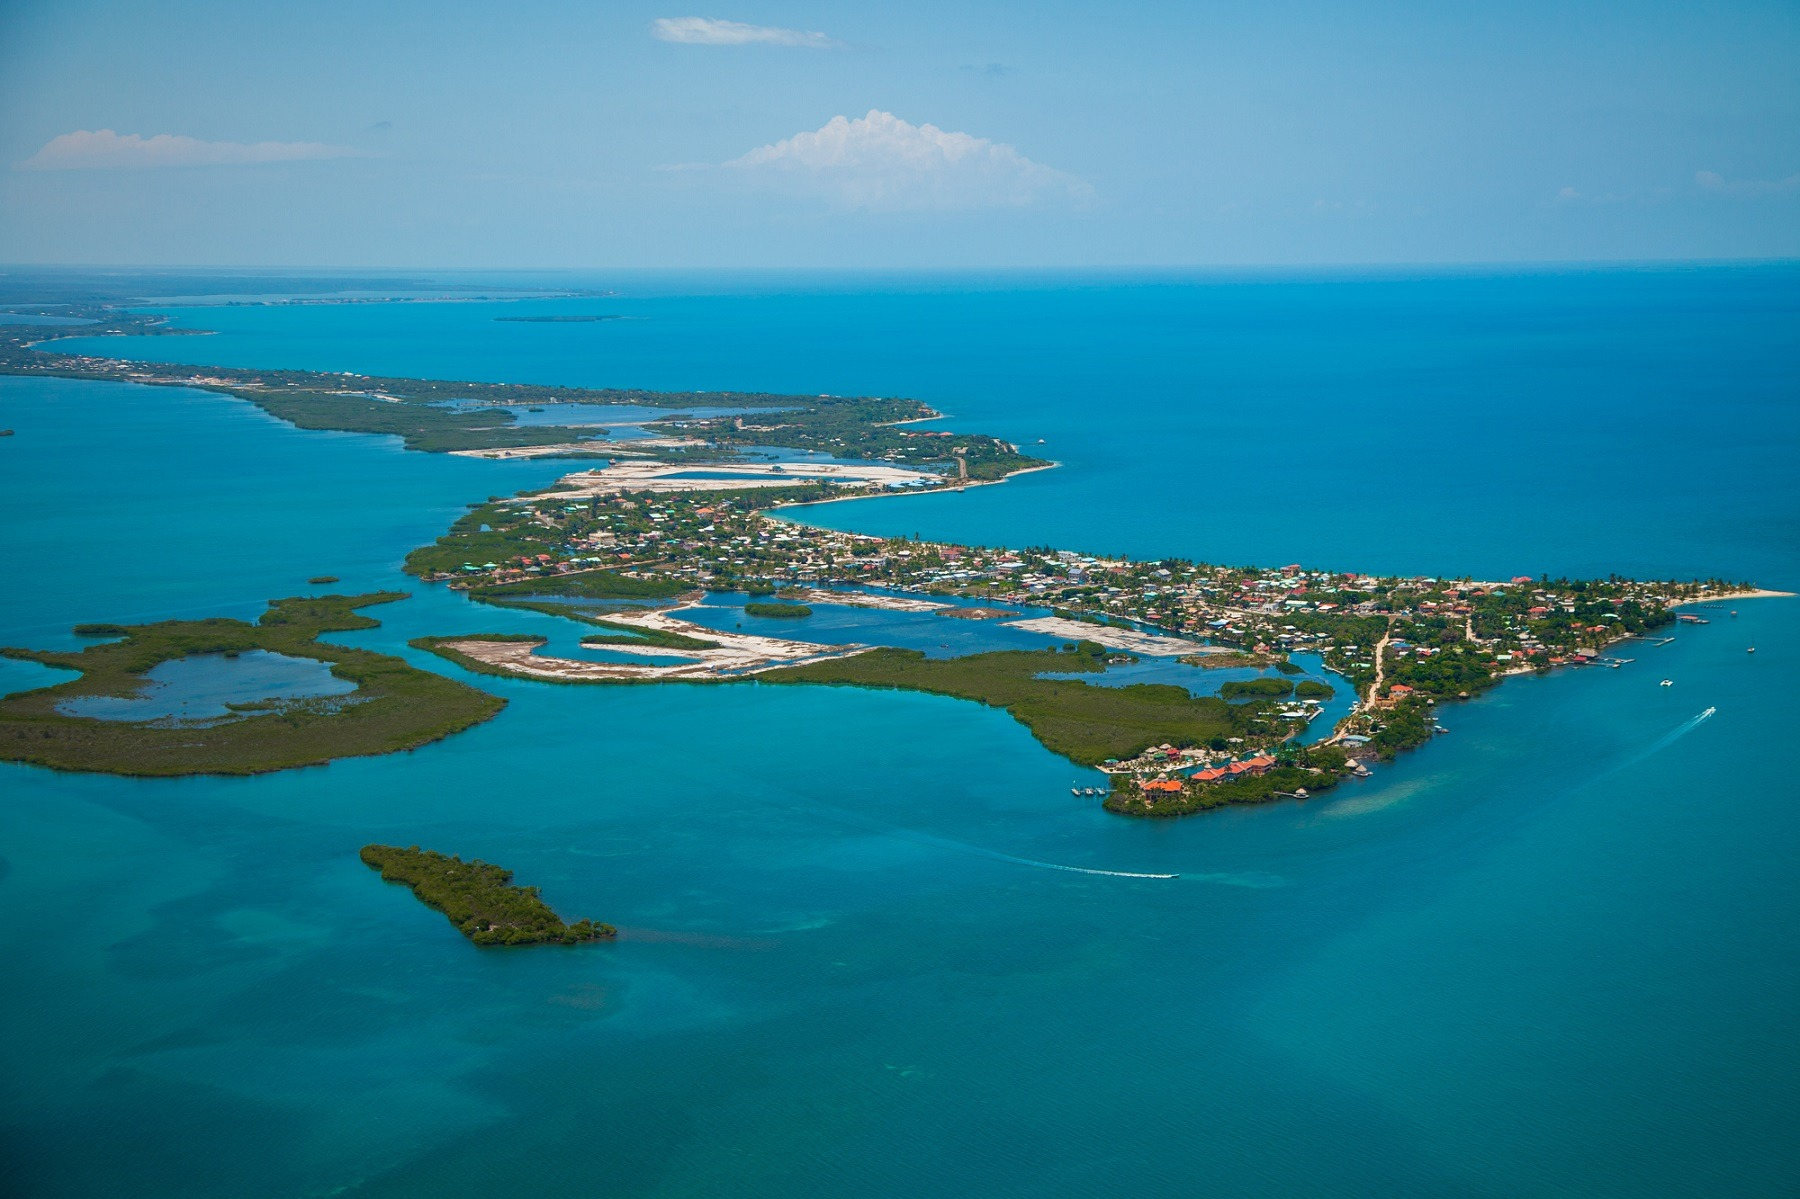 Placencia peninsula, Belize